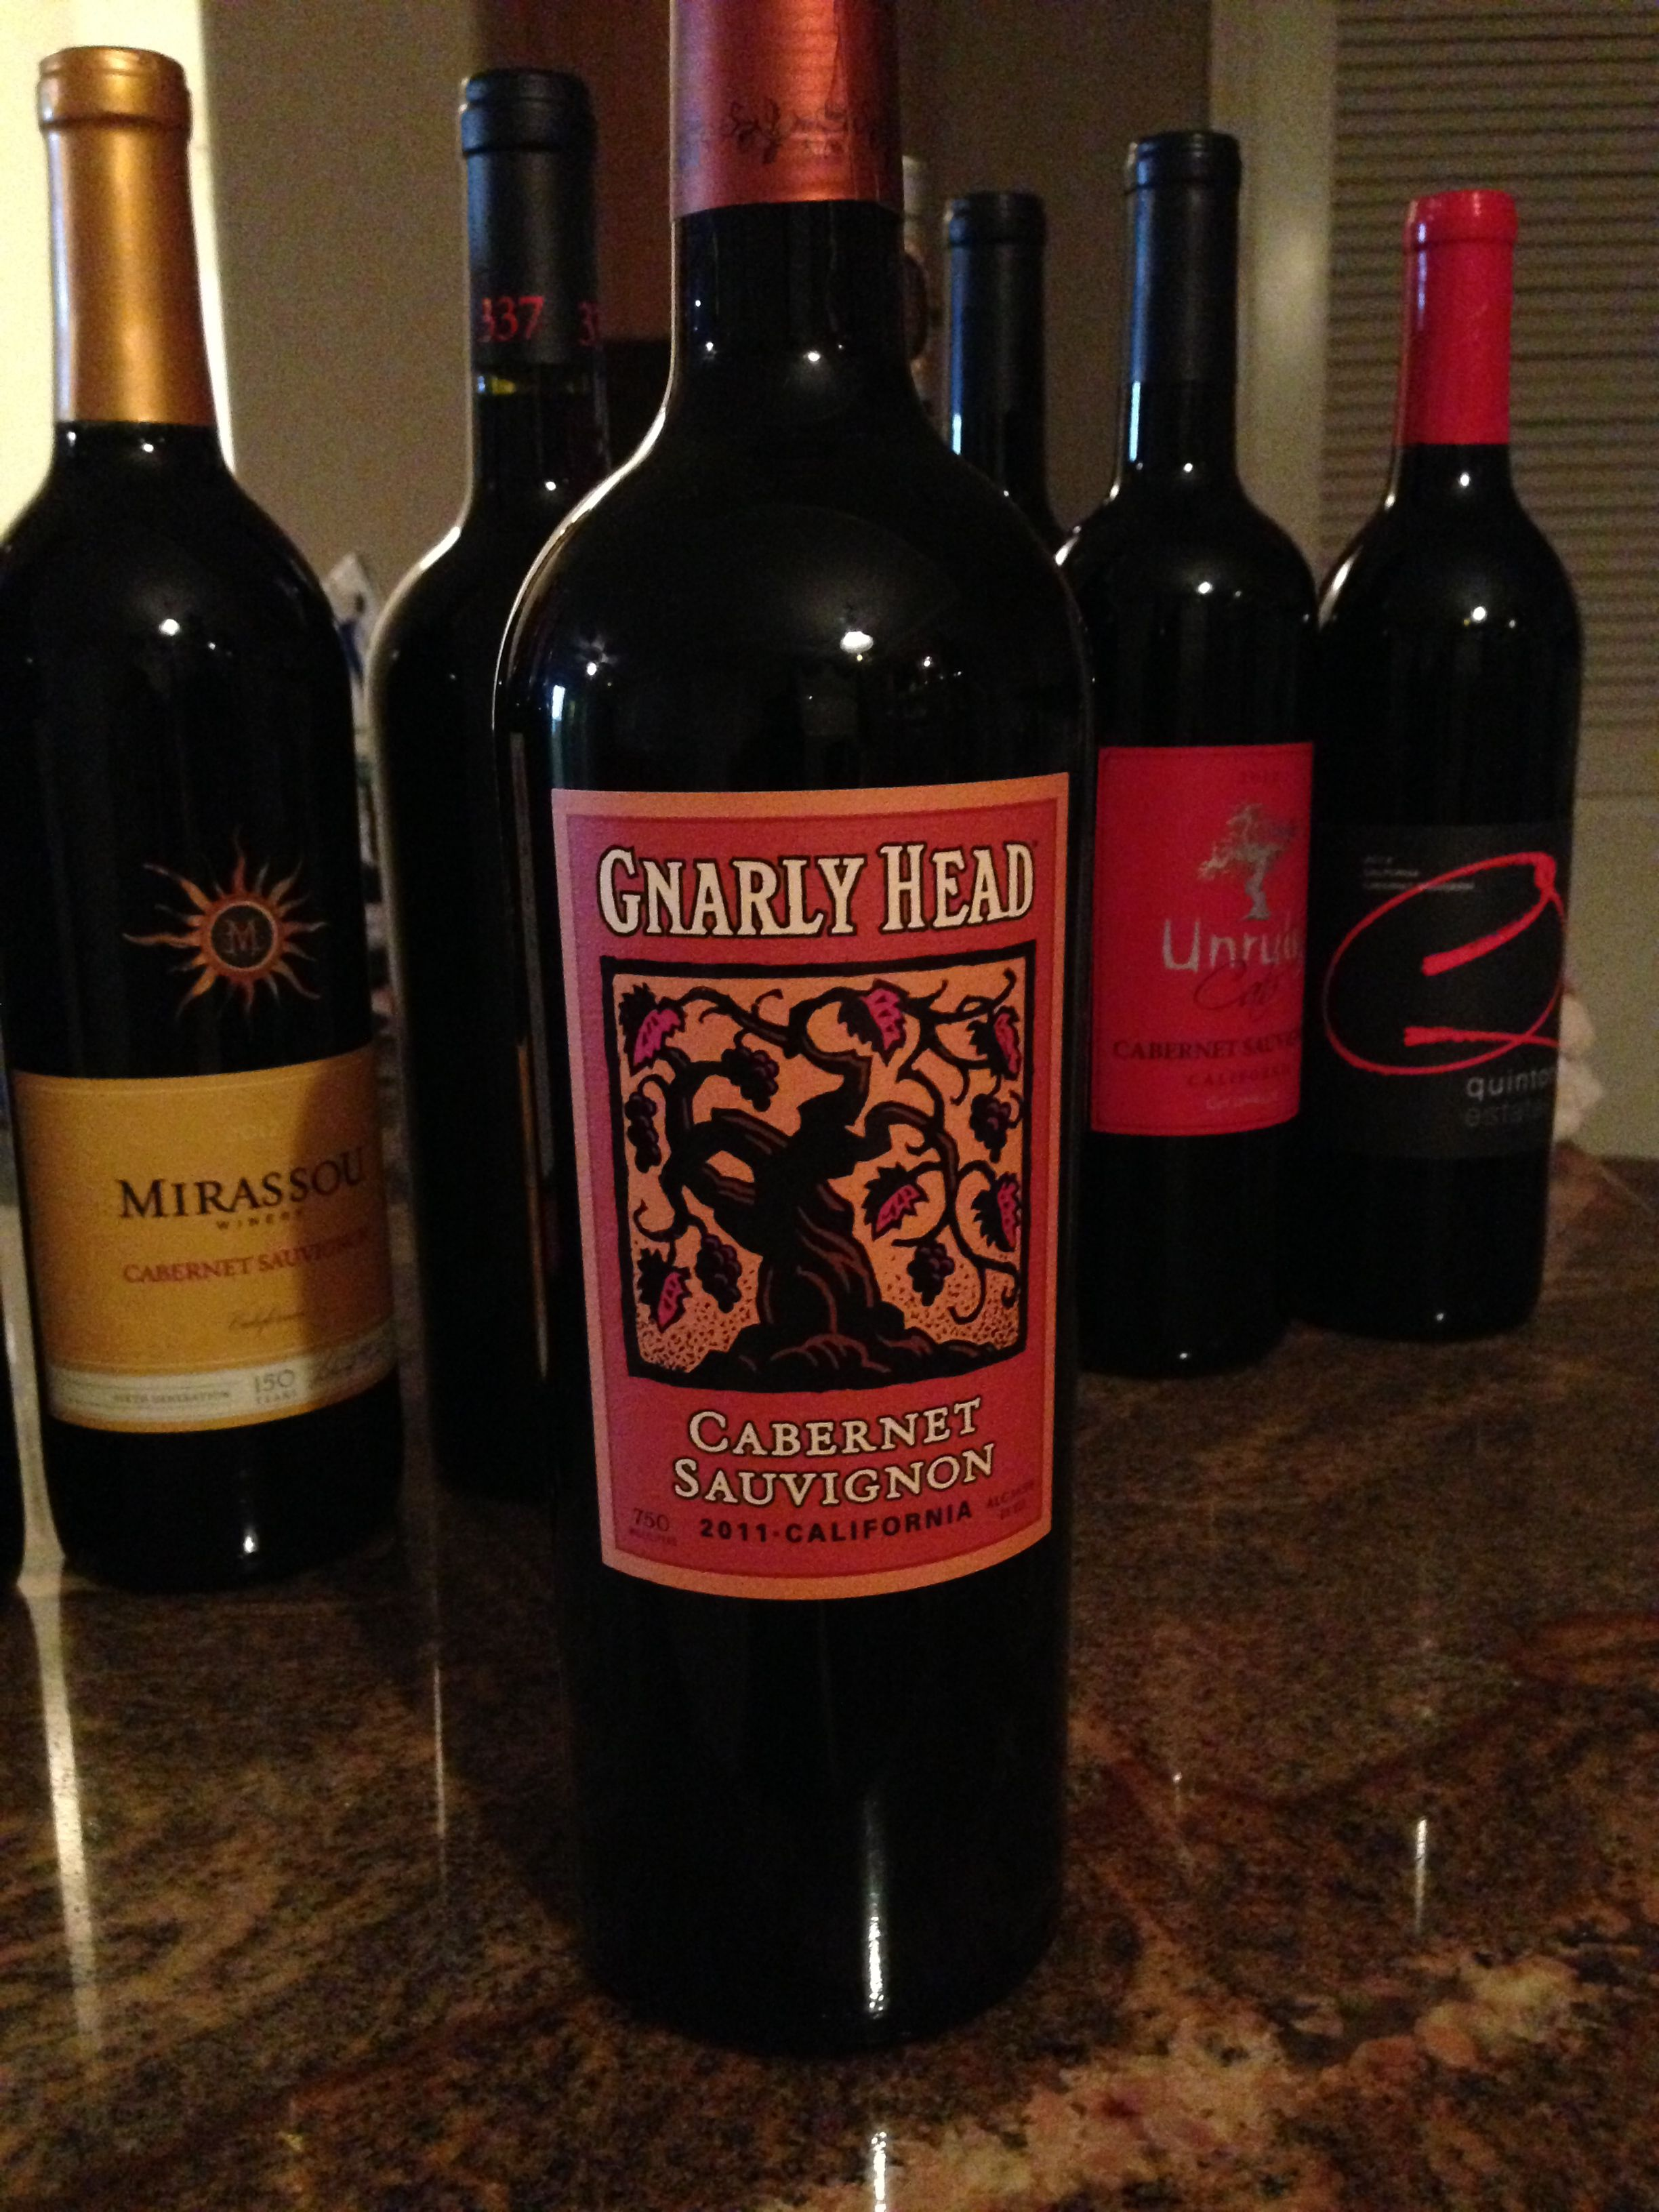 Gnarly Head Cabernet Sauvignon Favorite Wine Wine Bottle Cabernet